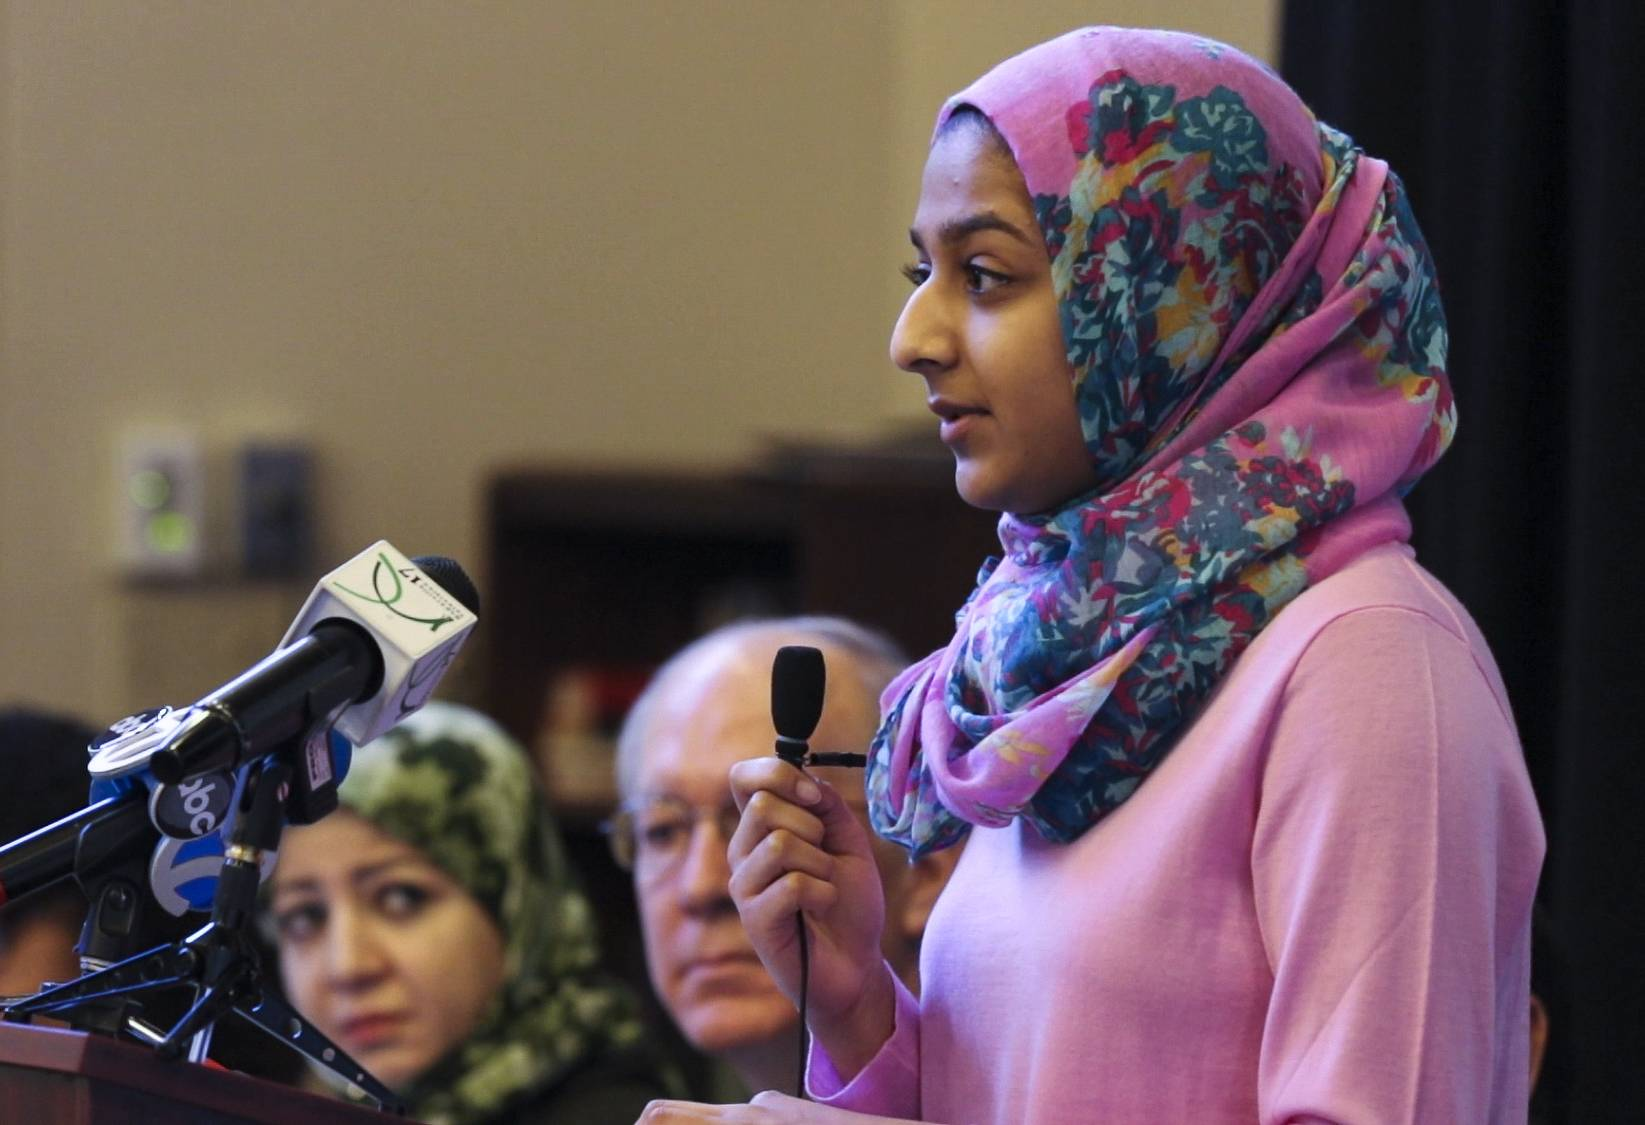 Samia Abdul-Qadir, a junior at Naperville North High School, says she faced anti-Muslim comments from classmates in the wake of President Donald Trump's executive order.